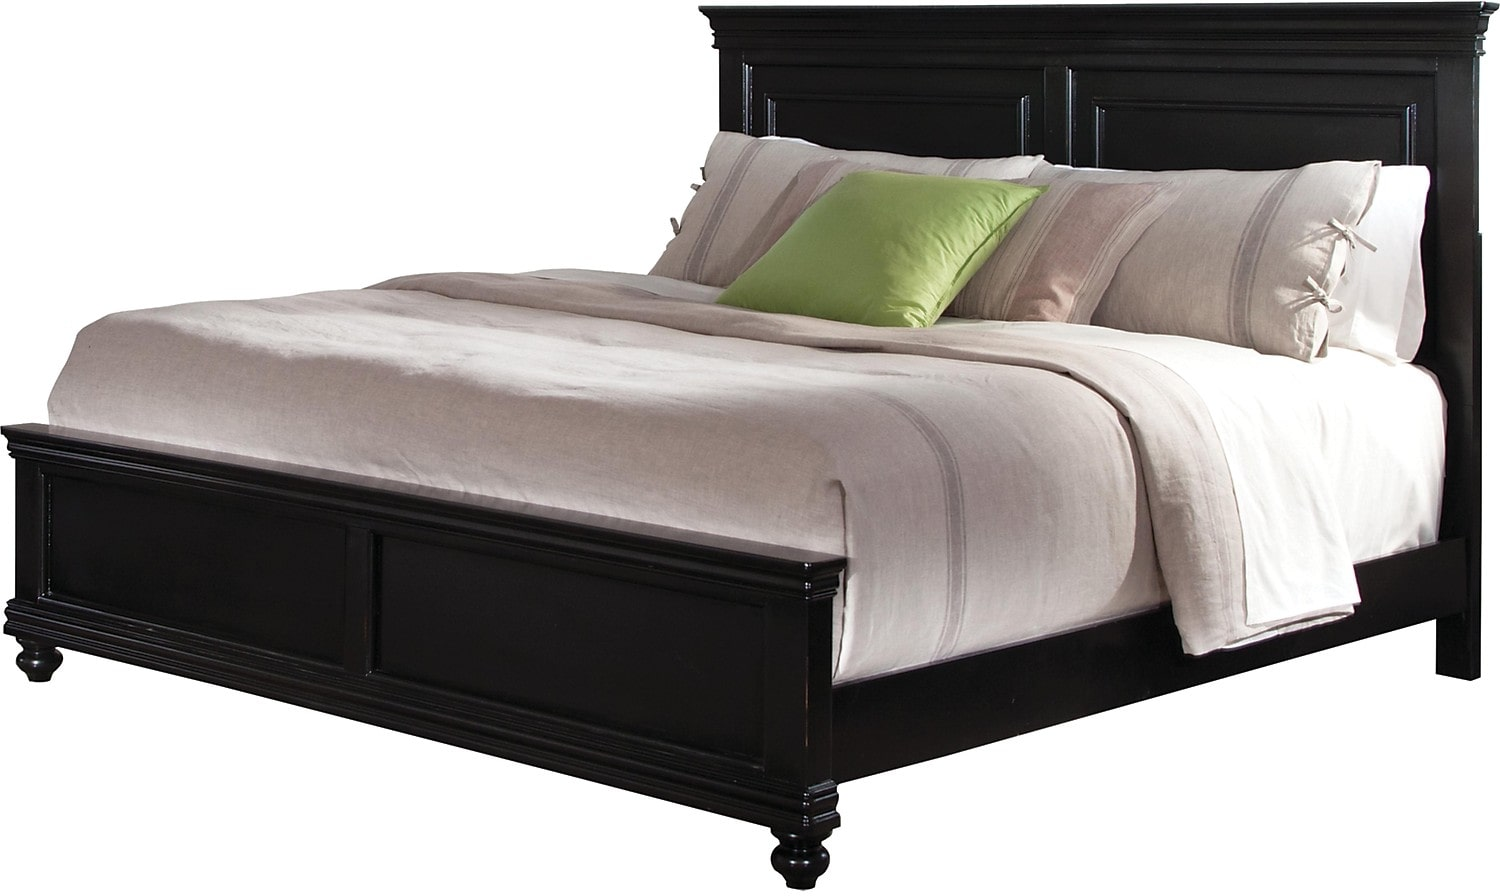 Bridgeport queen bed black the brick - Furniture picture ...